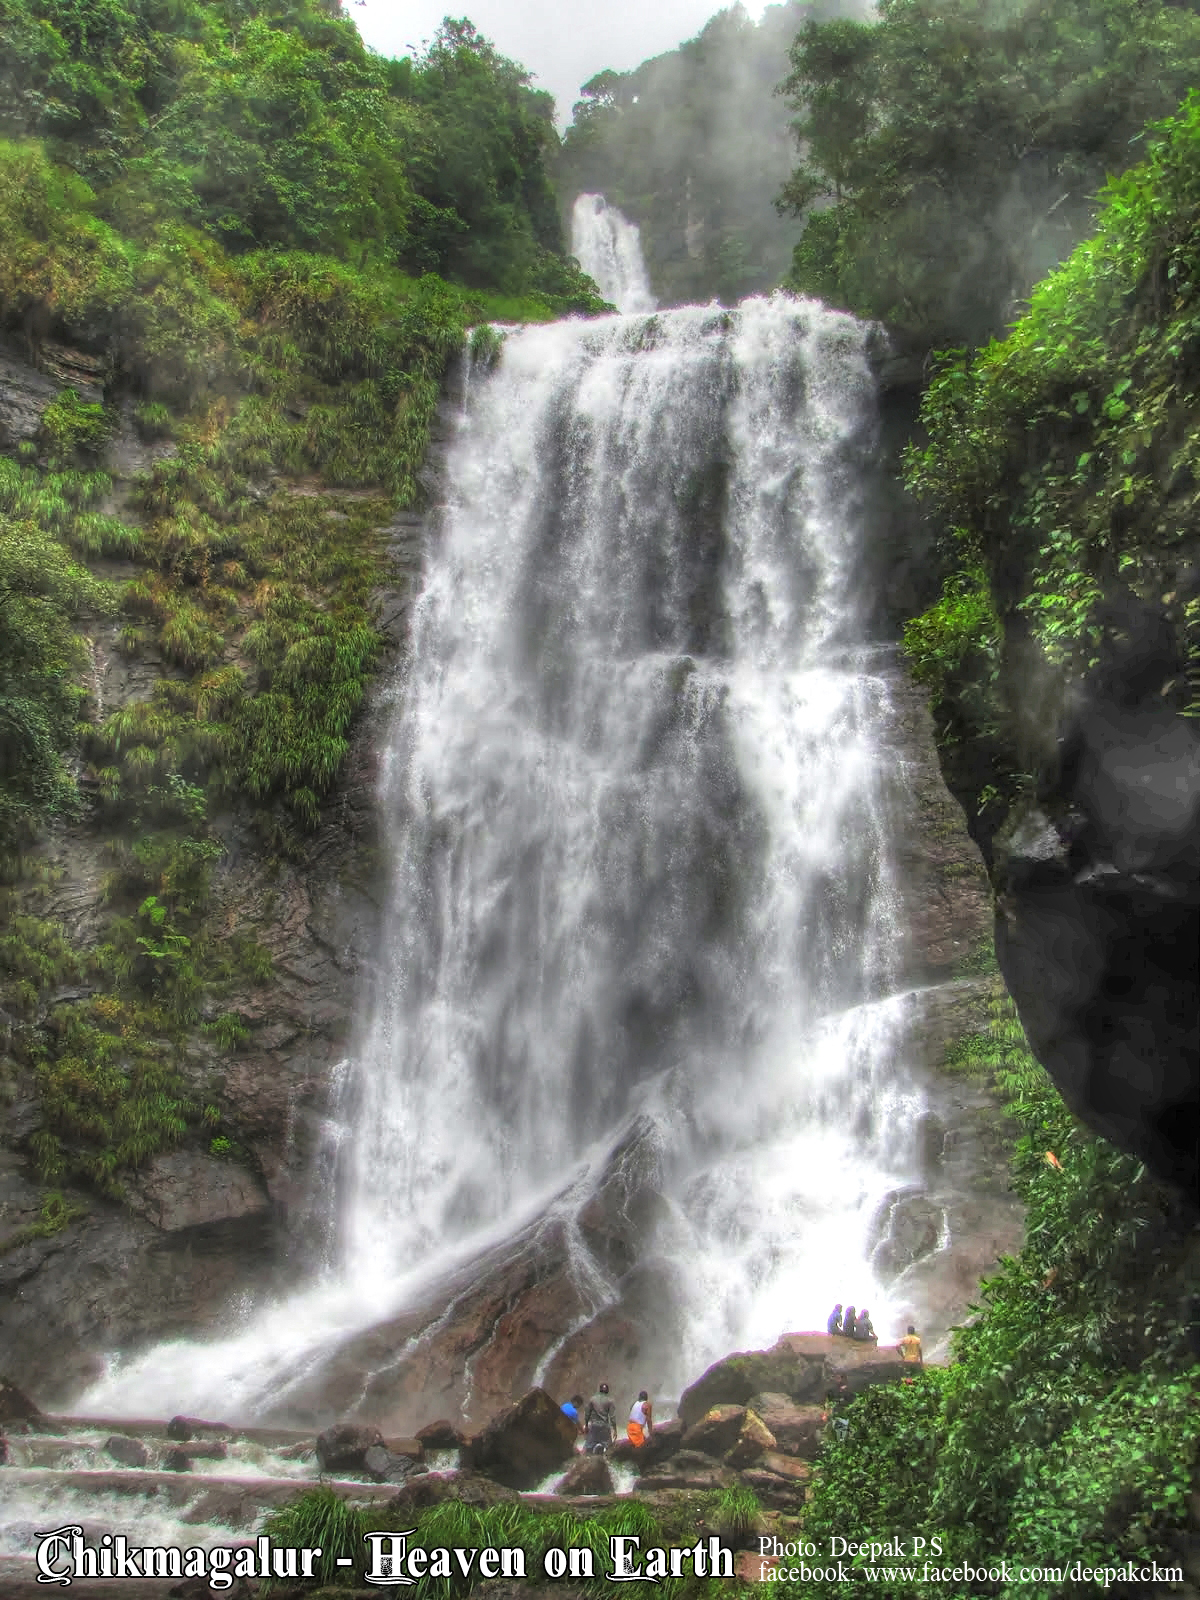 Photos of chikmagalur in karnataka Alexa Chung Tweets A Retro Family Portrait: See The Star Before